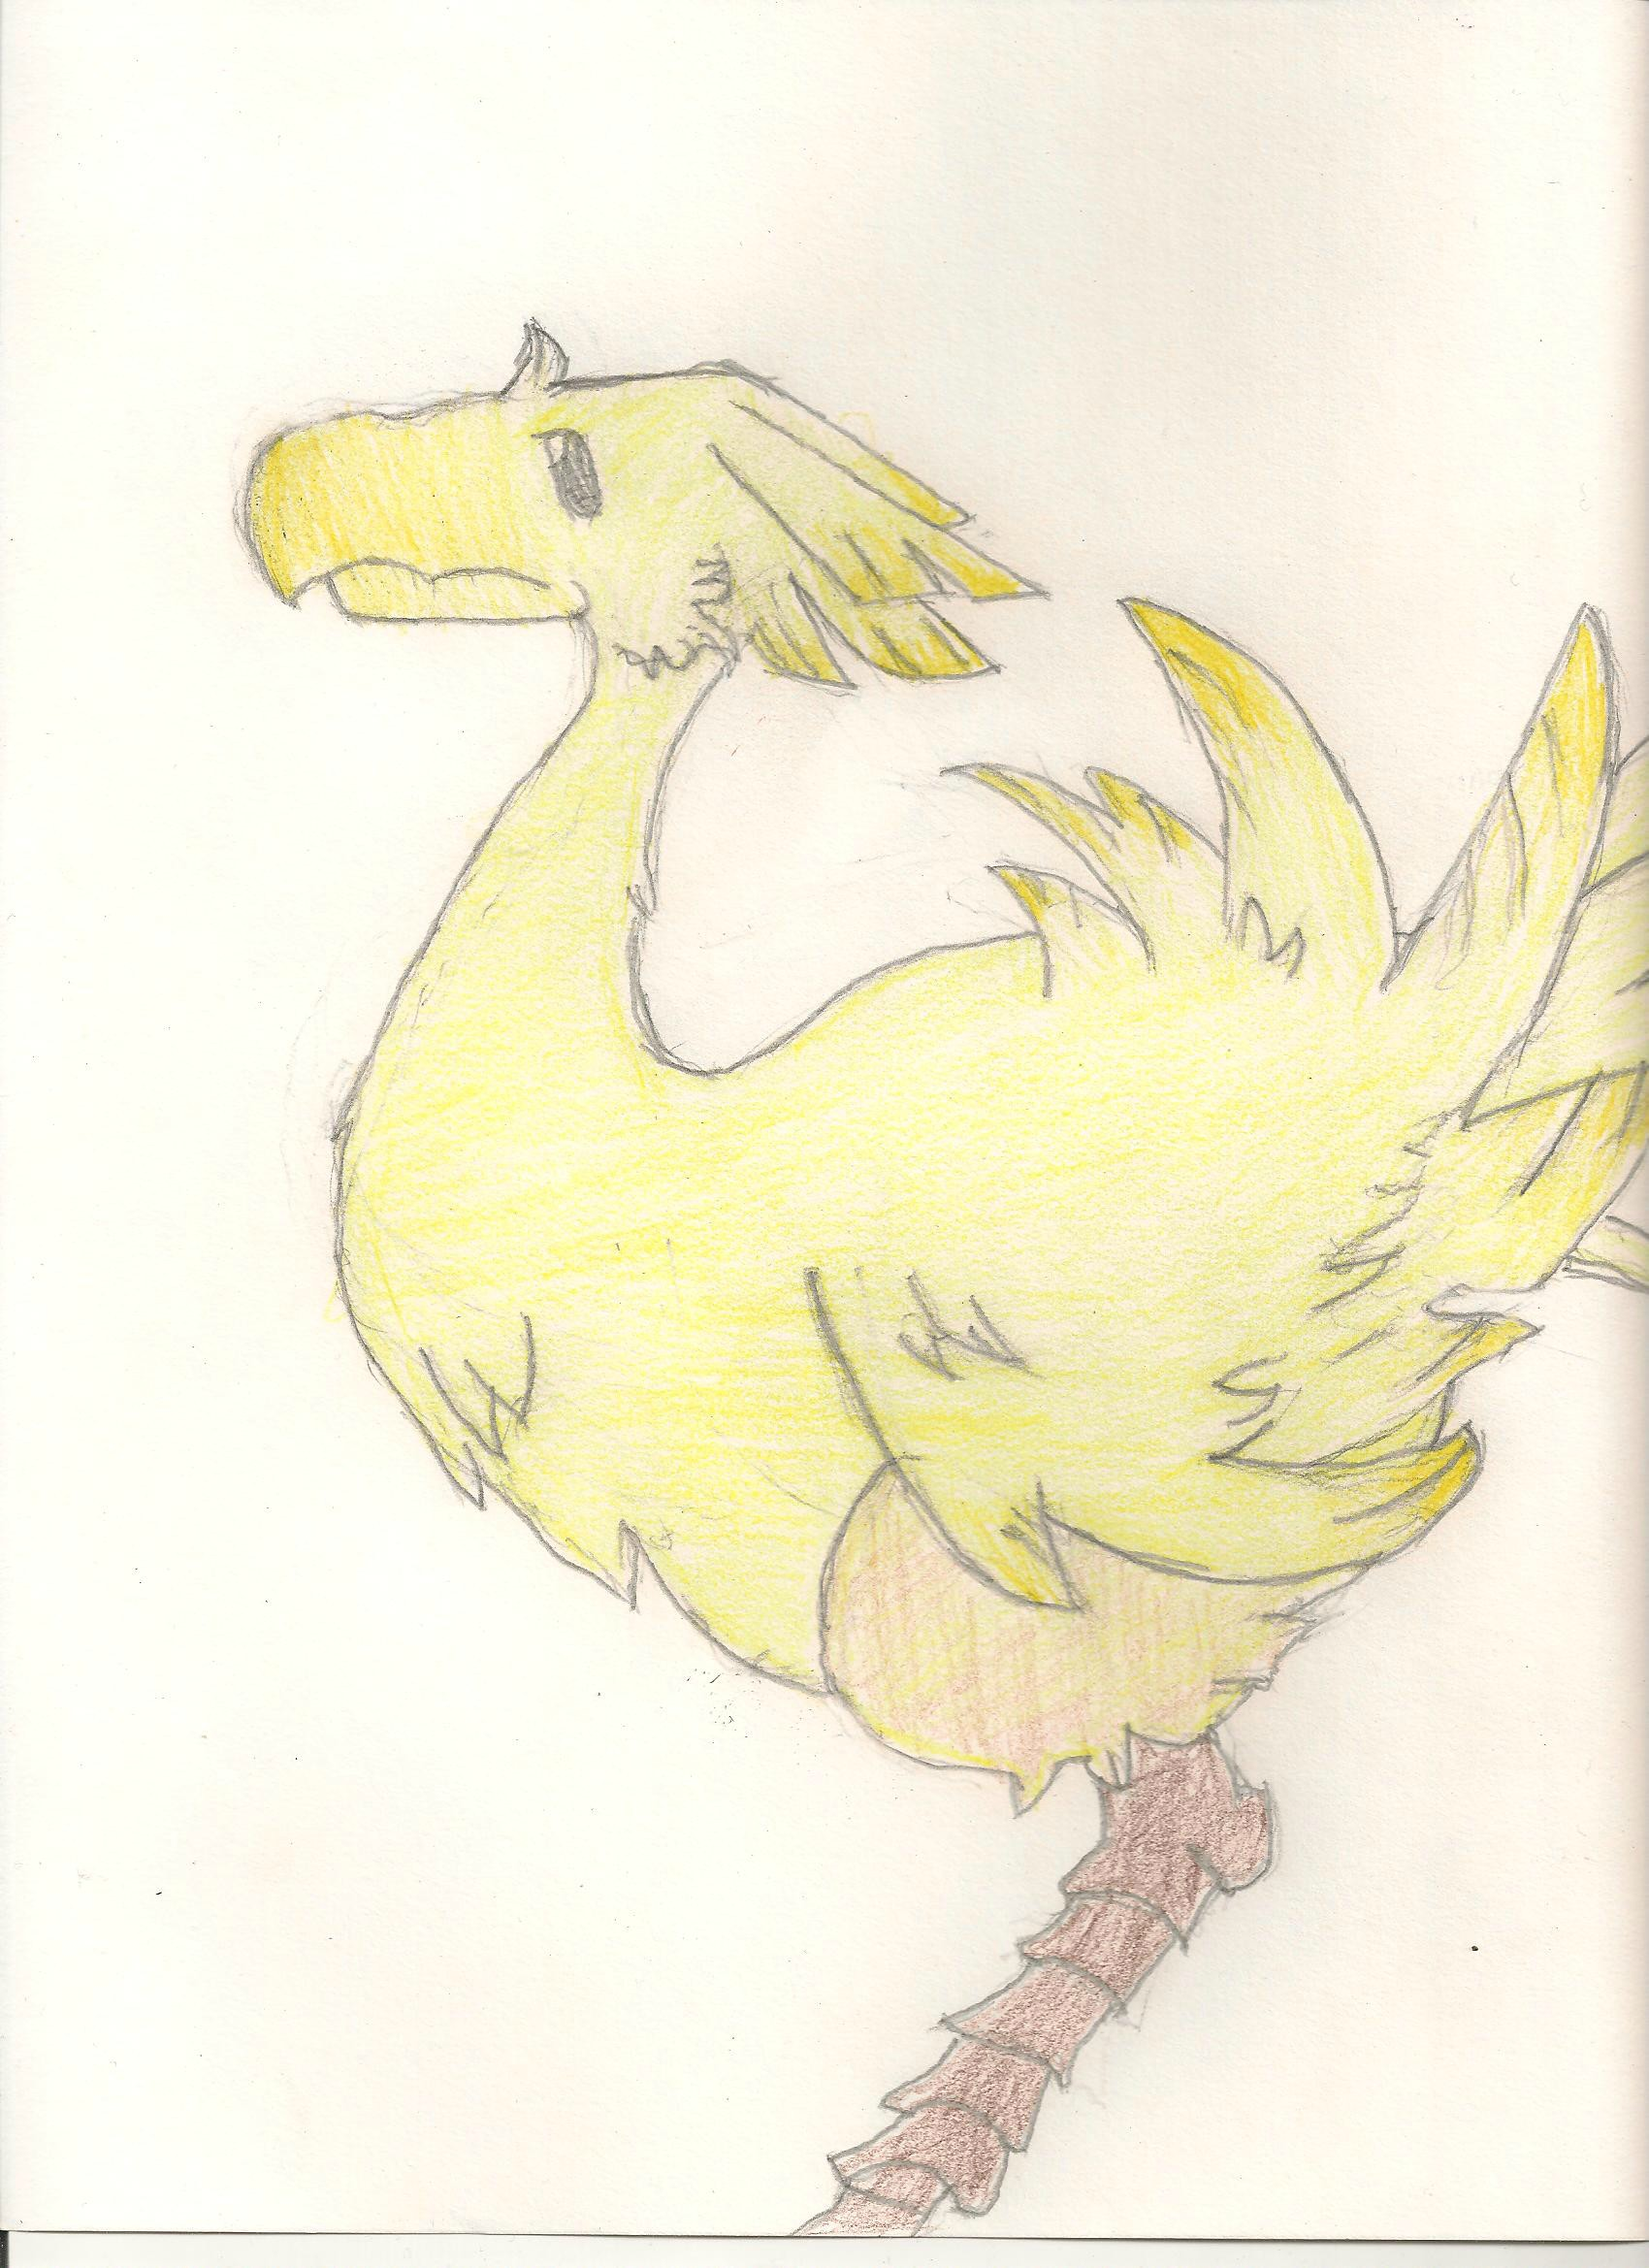 In the meantime, here's a drawing of a Chocobo I made a while ago :D